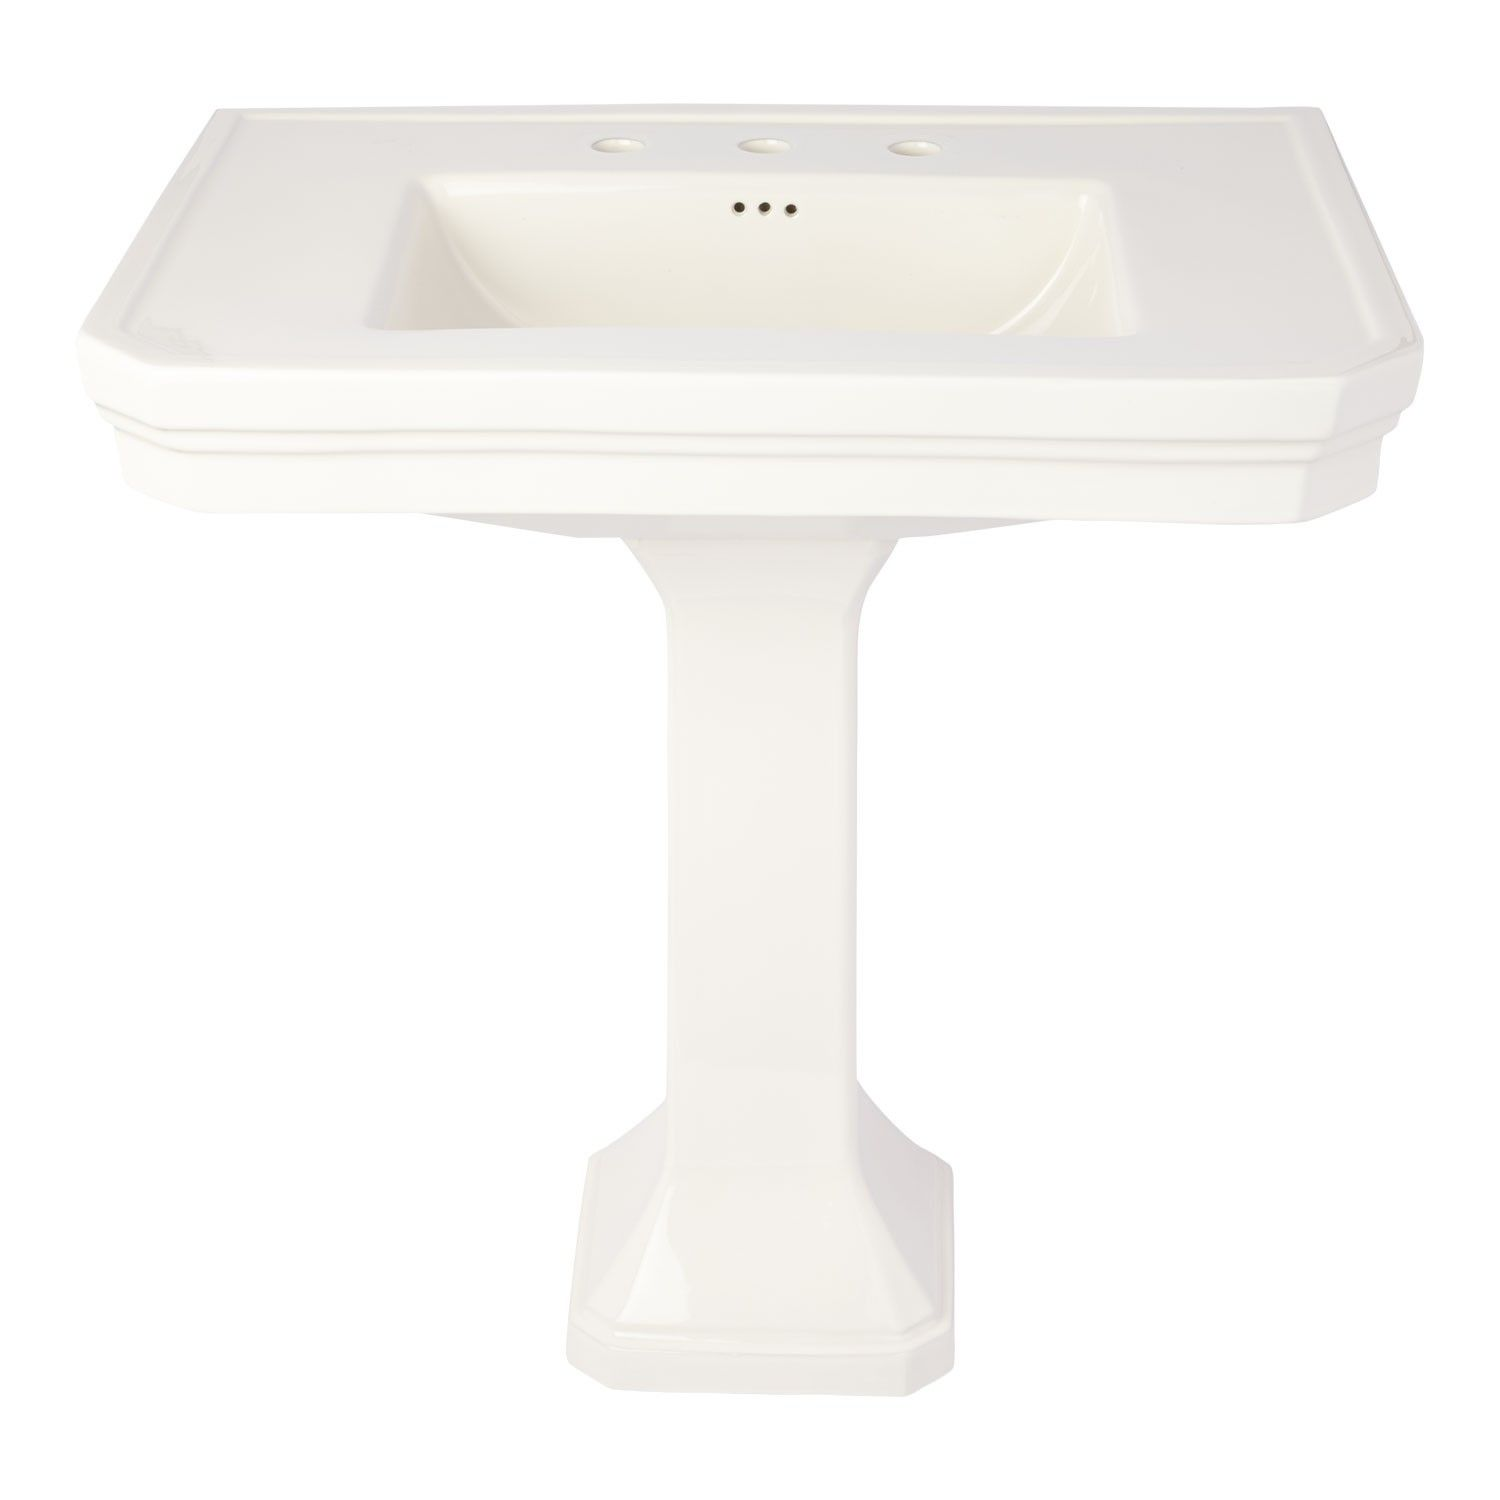 The Streamlined Design Of The Kacy Pedestal Sink Is Perfect For Any Style  Home Decor. This Pedestal Features A Decorative, Stepped Interior And  Exterior For ...